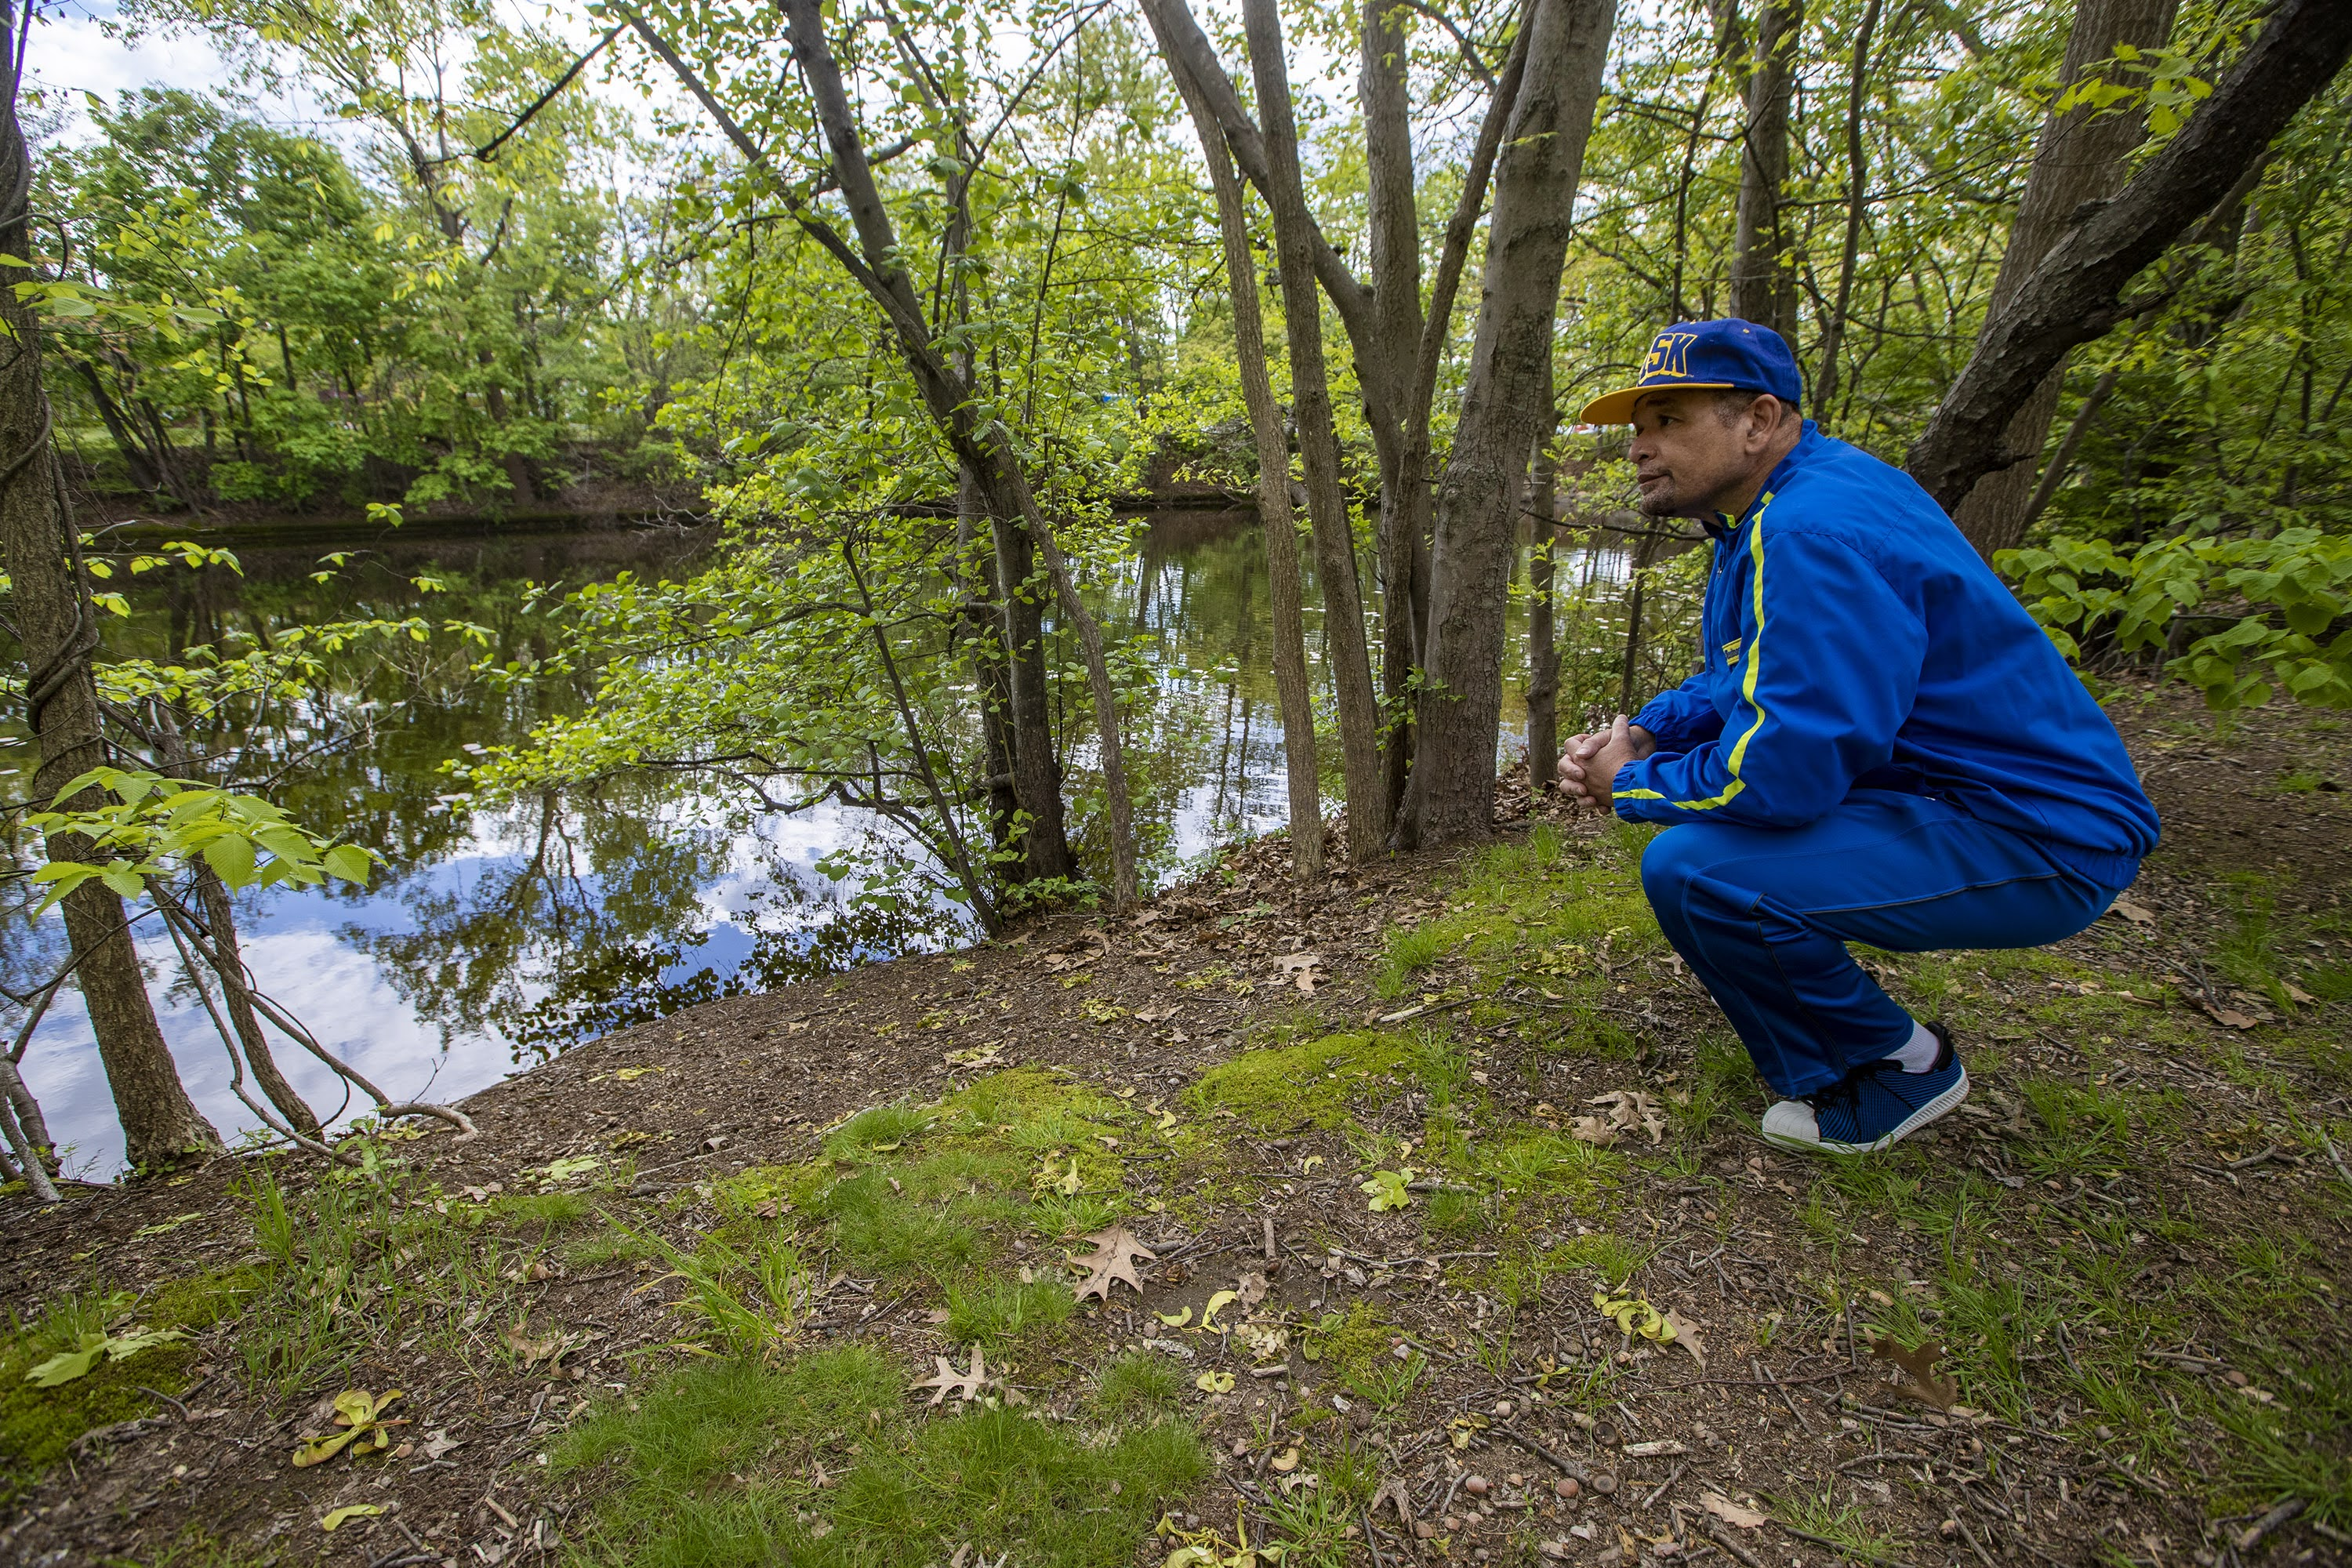 Poet Terry Carter kneels down to gaze at the Mystic River, along the banks in West Medford where he grew up. (Jesse Costa/WBUR)